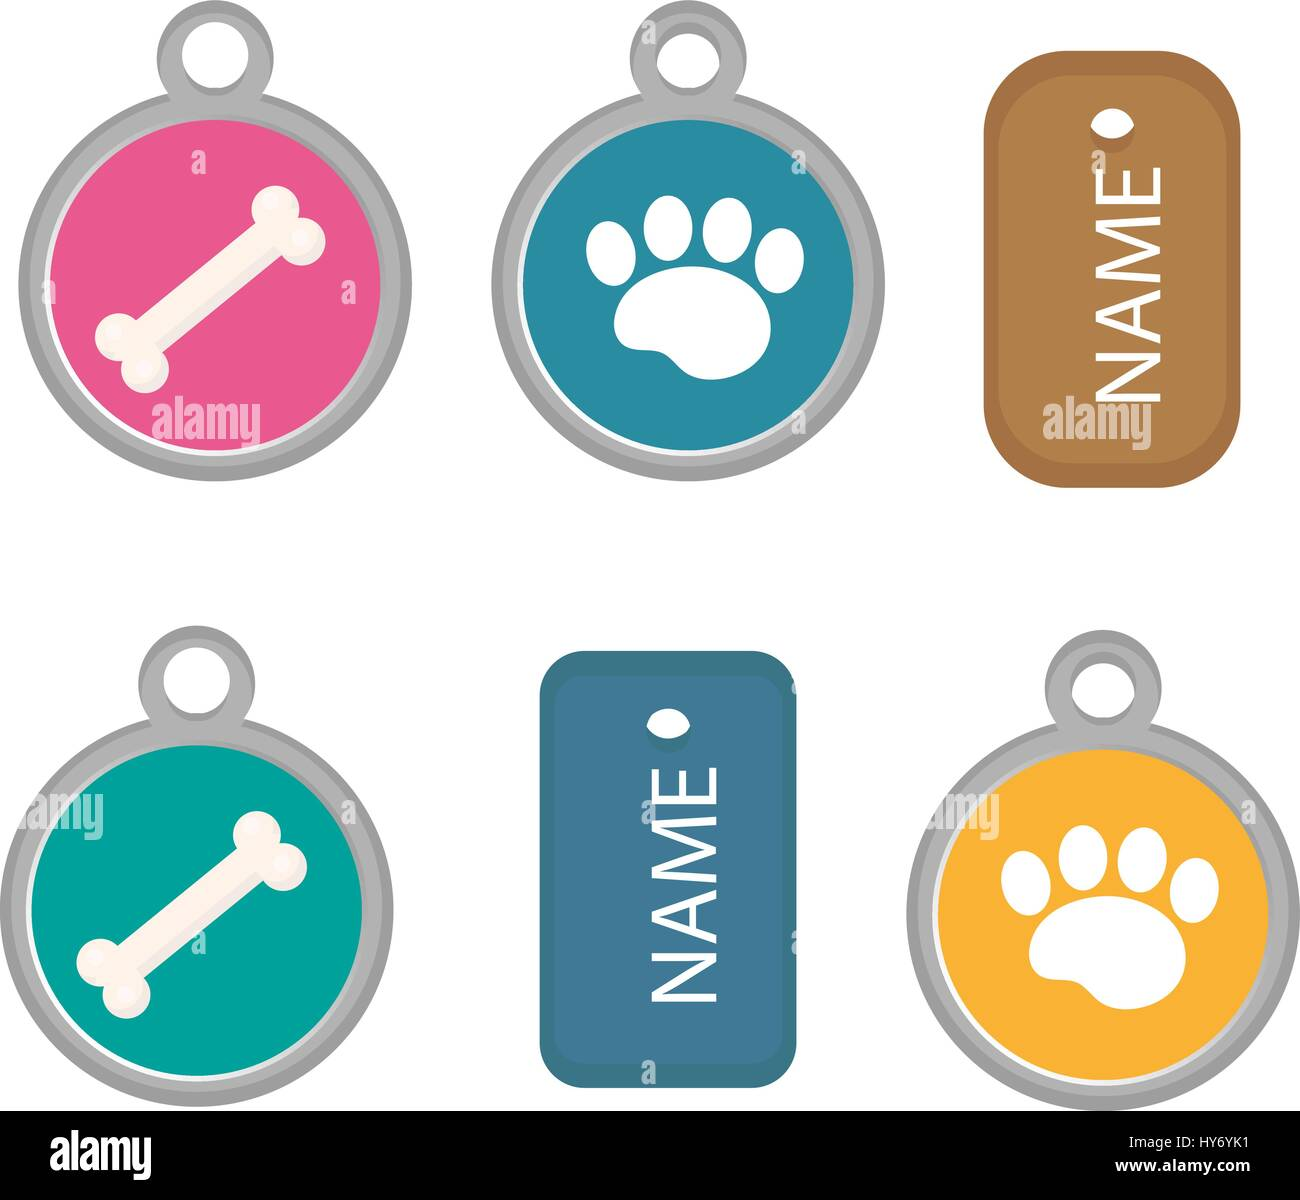 Medallion, dog tag set of icons, flat, cartoon style. Isolated on white background. Vector illustration, clip-art. Stock Vector